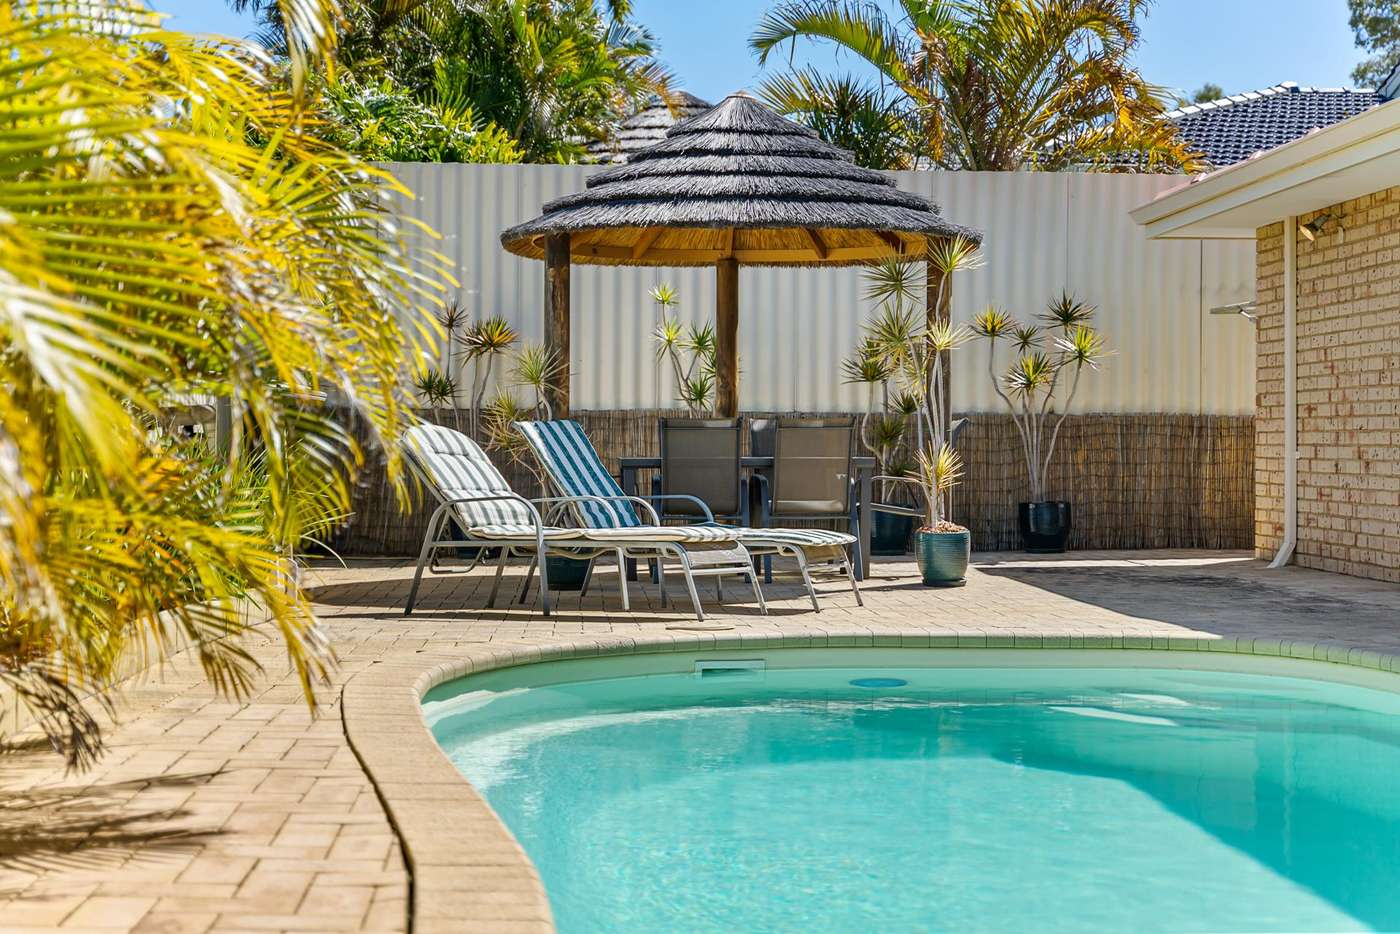 Main view of Homely house listing, 52 Bernedale Way, Duncraig WA 6023